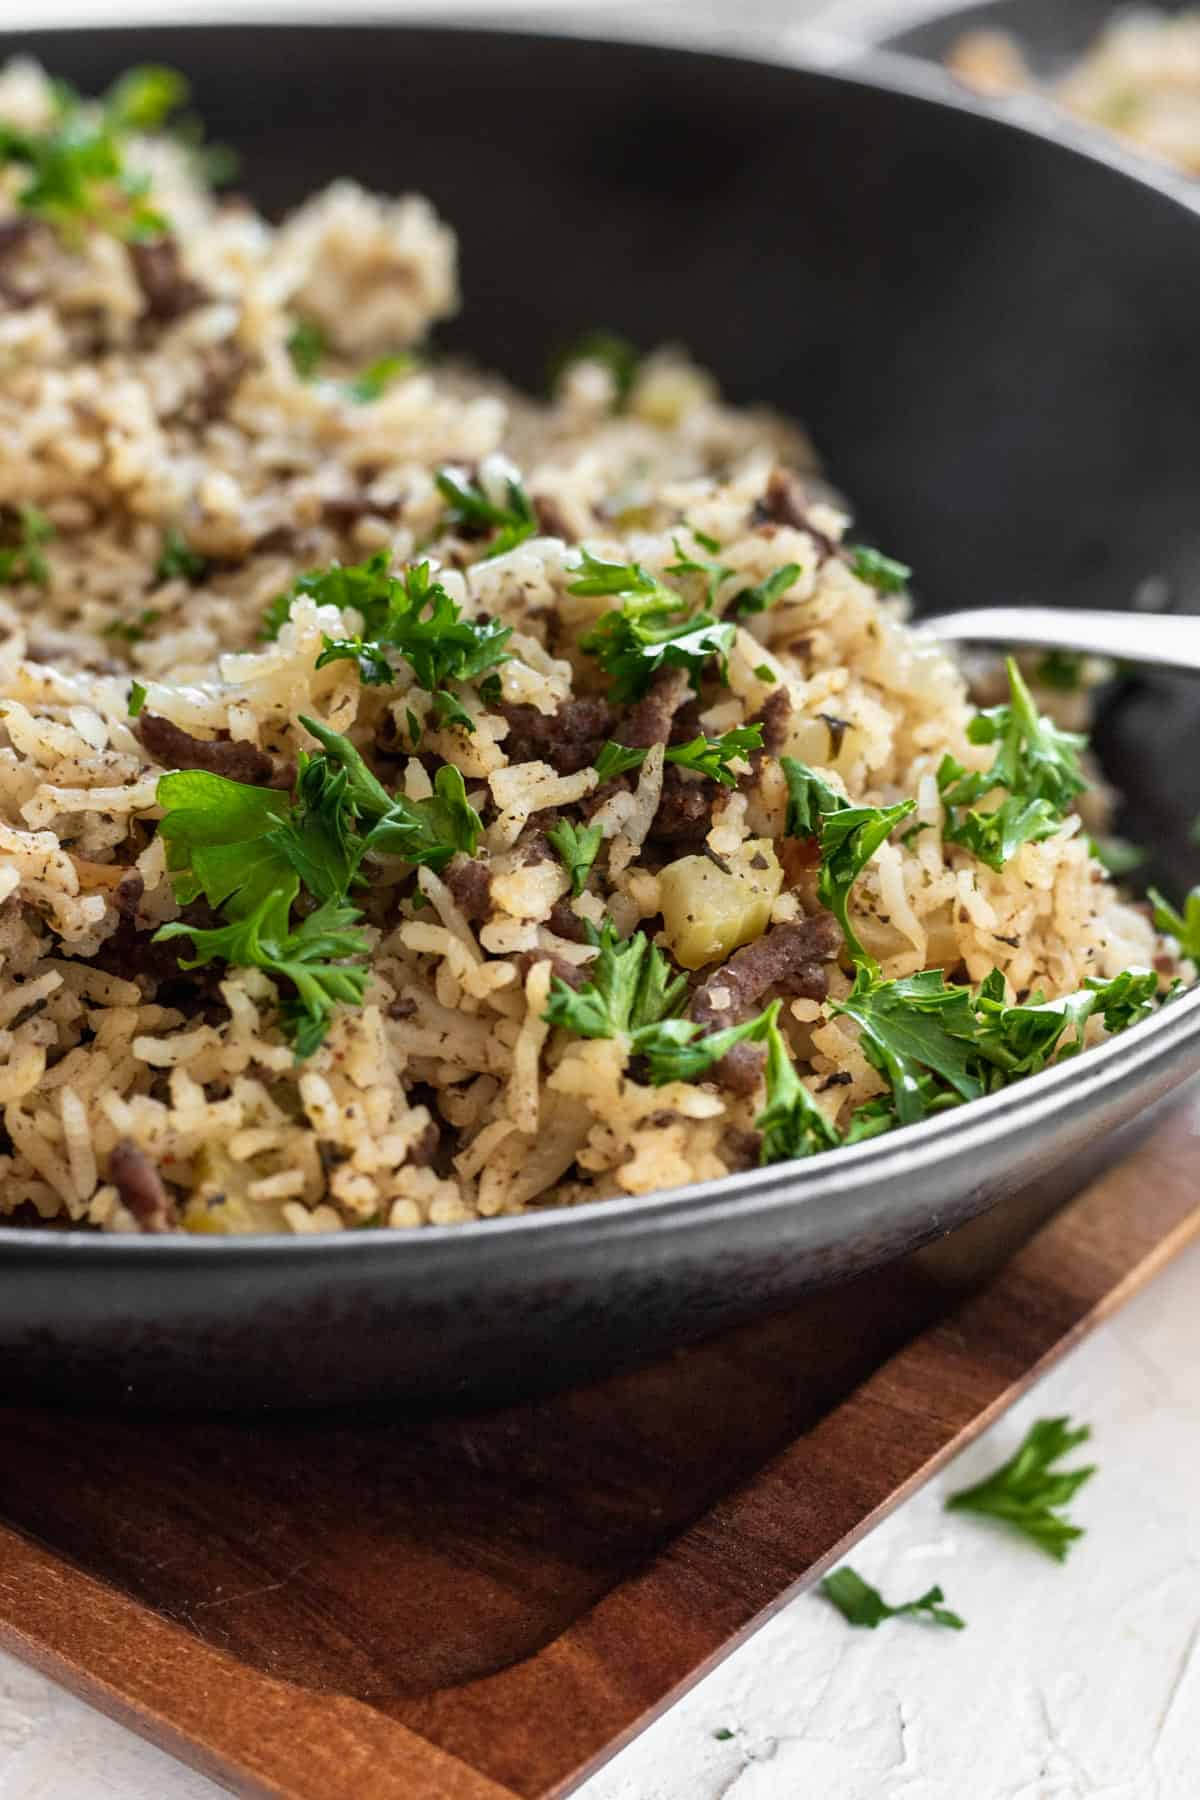 Dirty rice garnished with parsley in a black bowl.